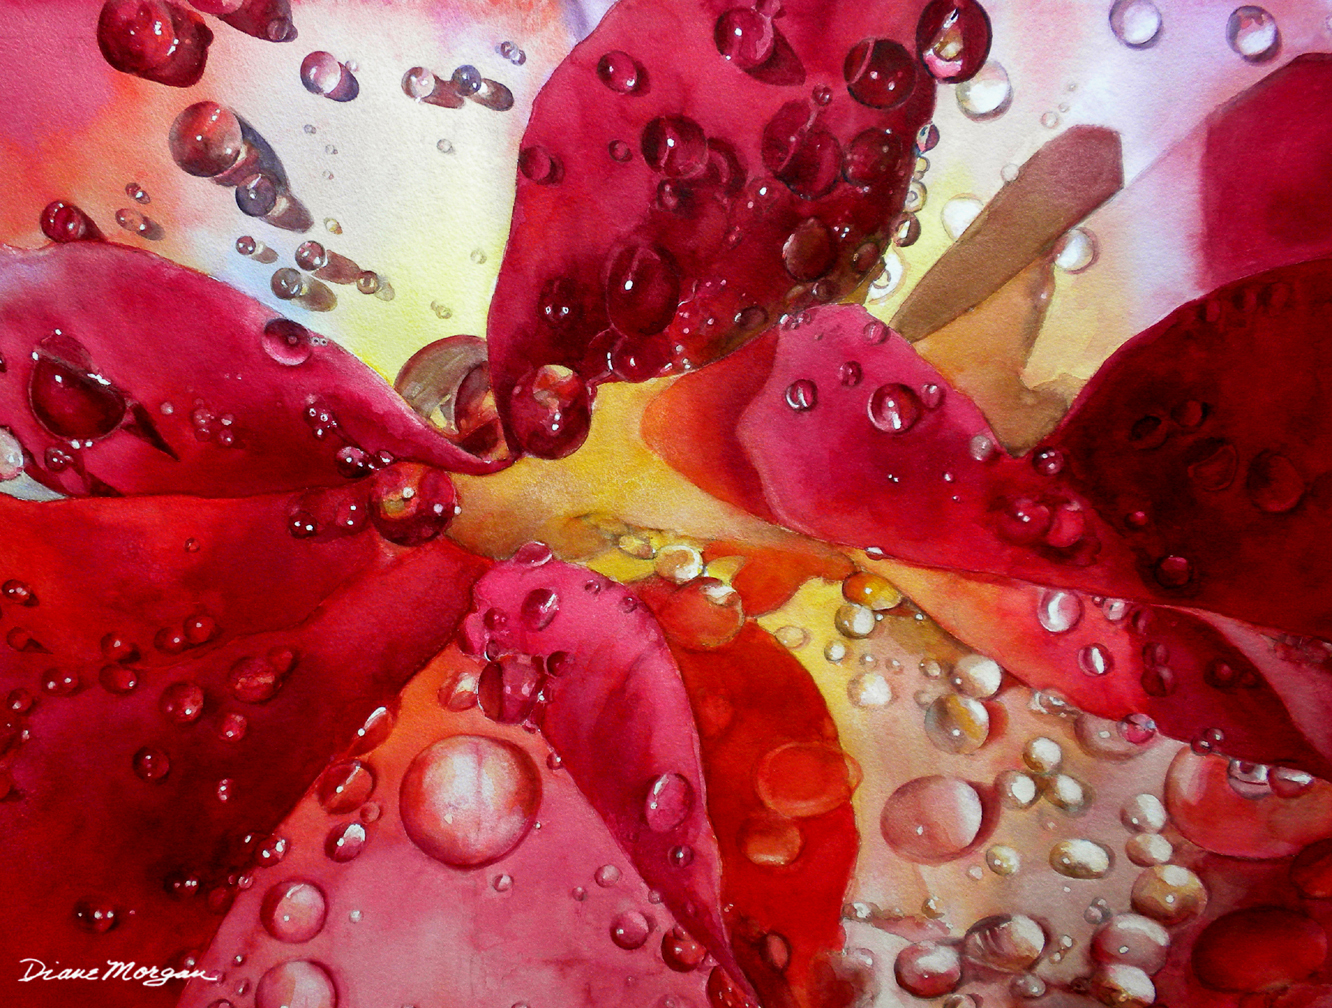 Diane Morgan Raindrops on Roses watercolor.jpg